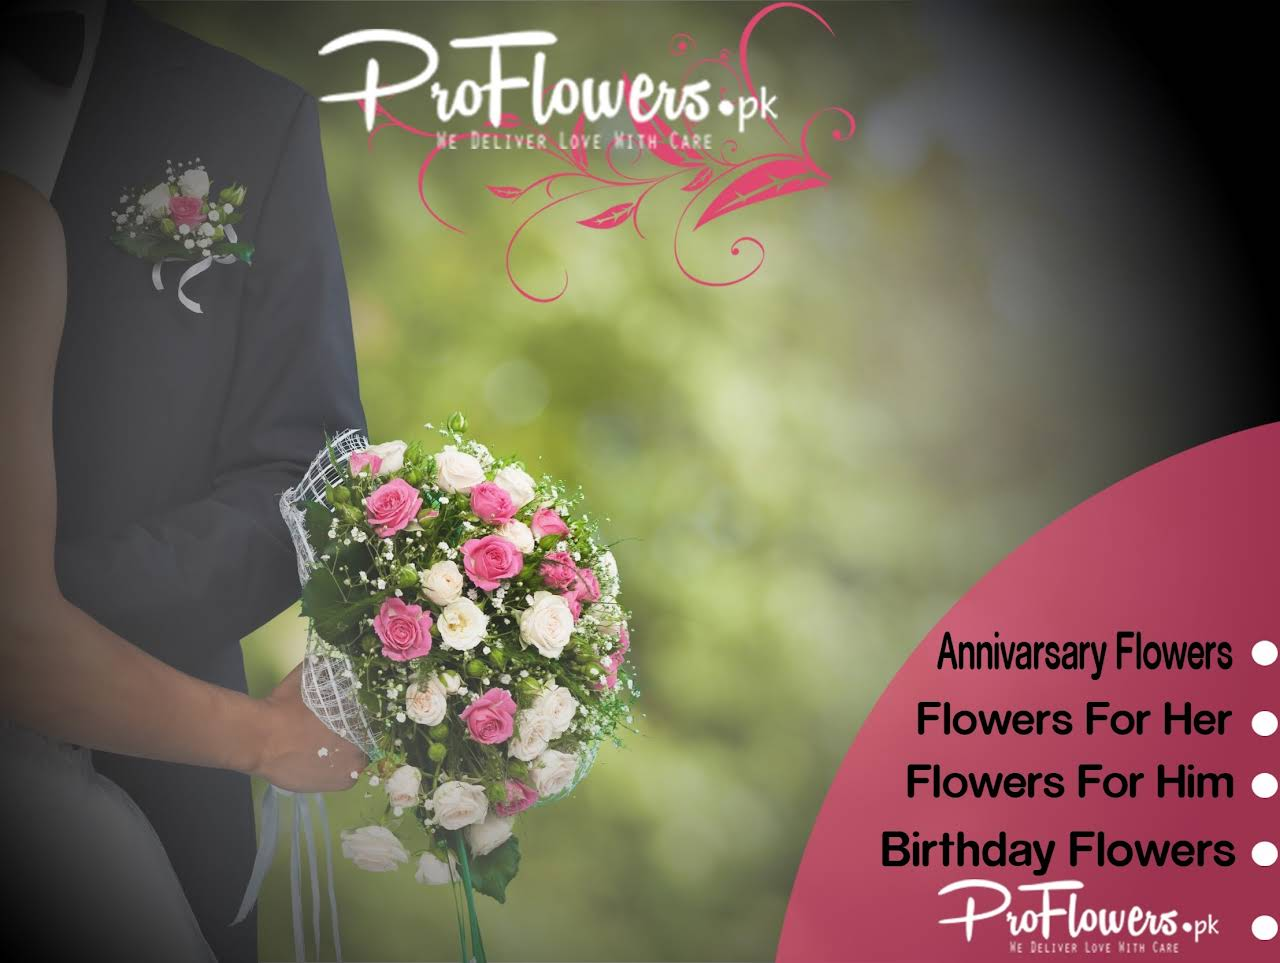 Pro flowers same day delivery new best image flower of 2018 same day flower delivery in scarborough me 04074 by your ftd izmirmasajfo